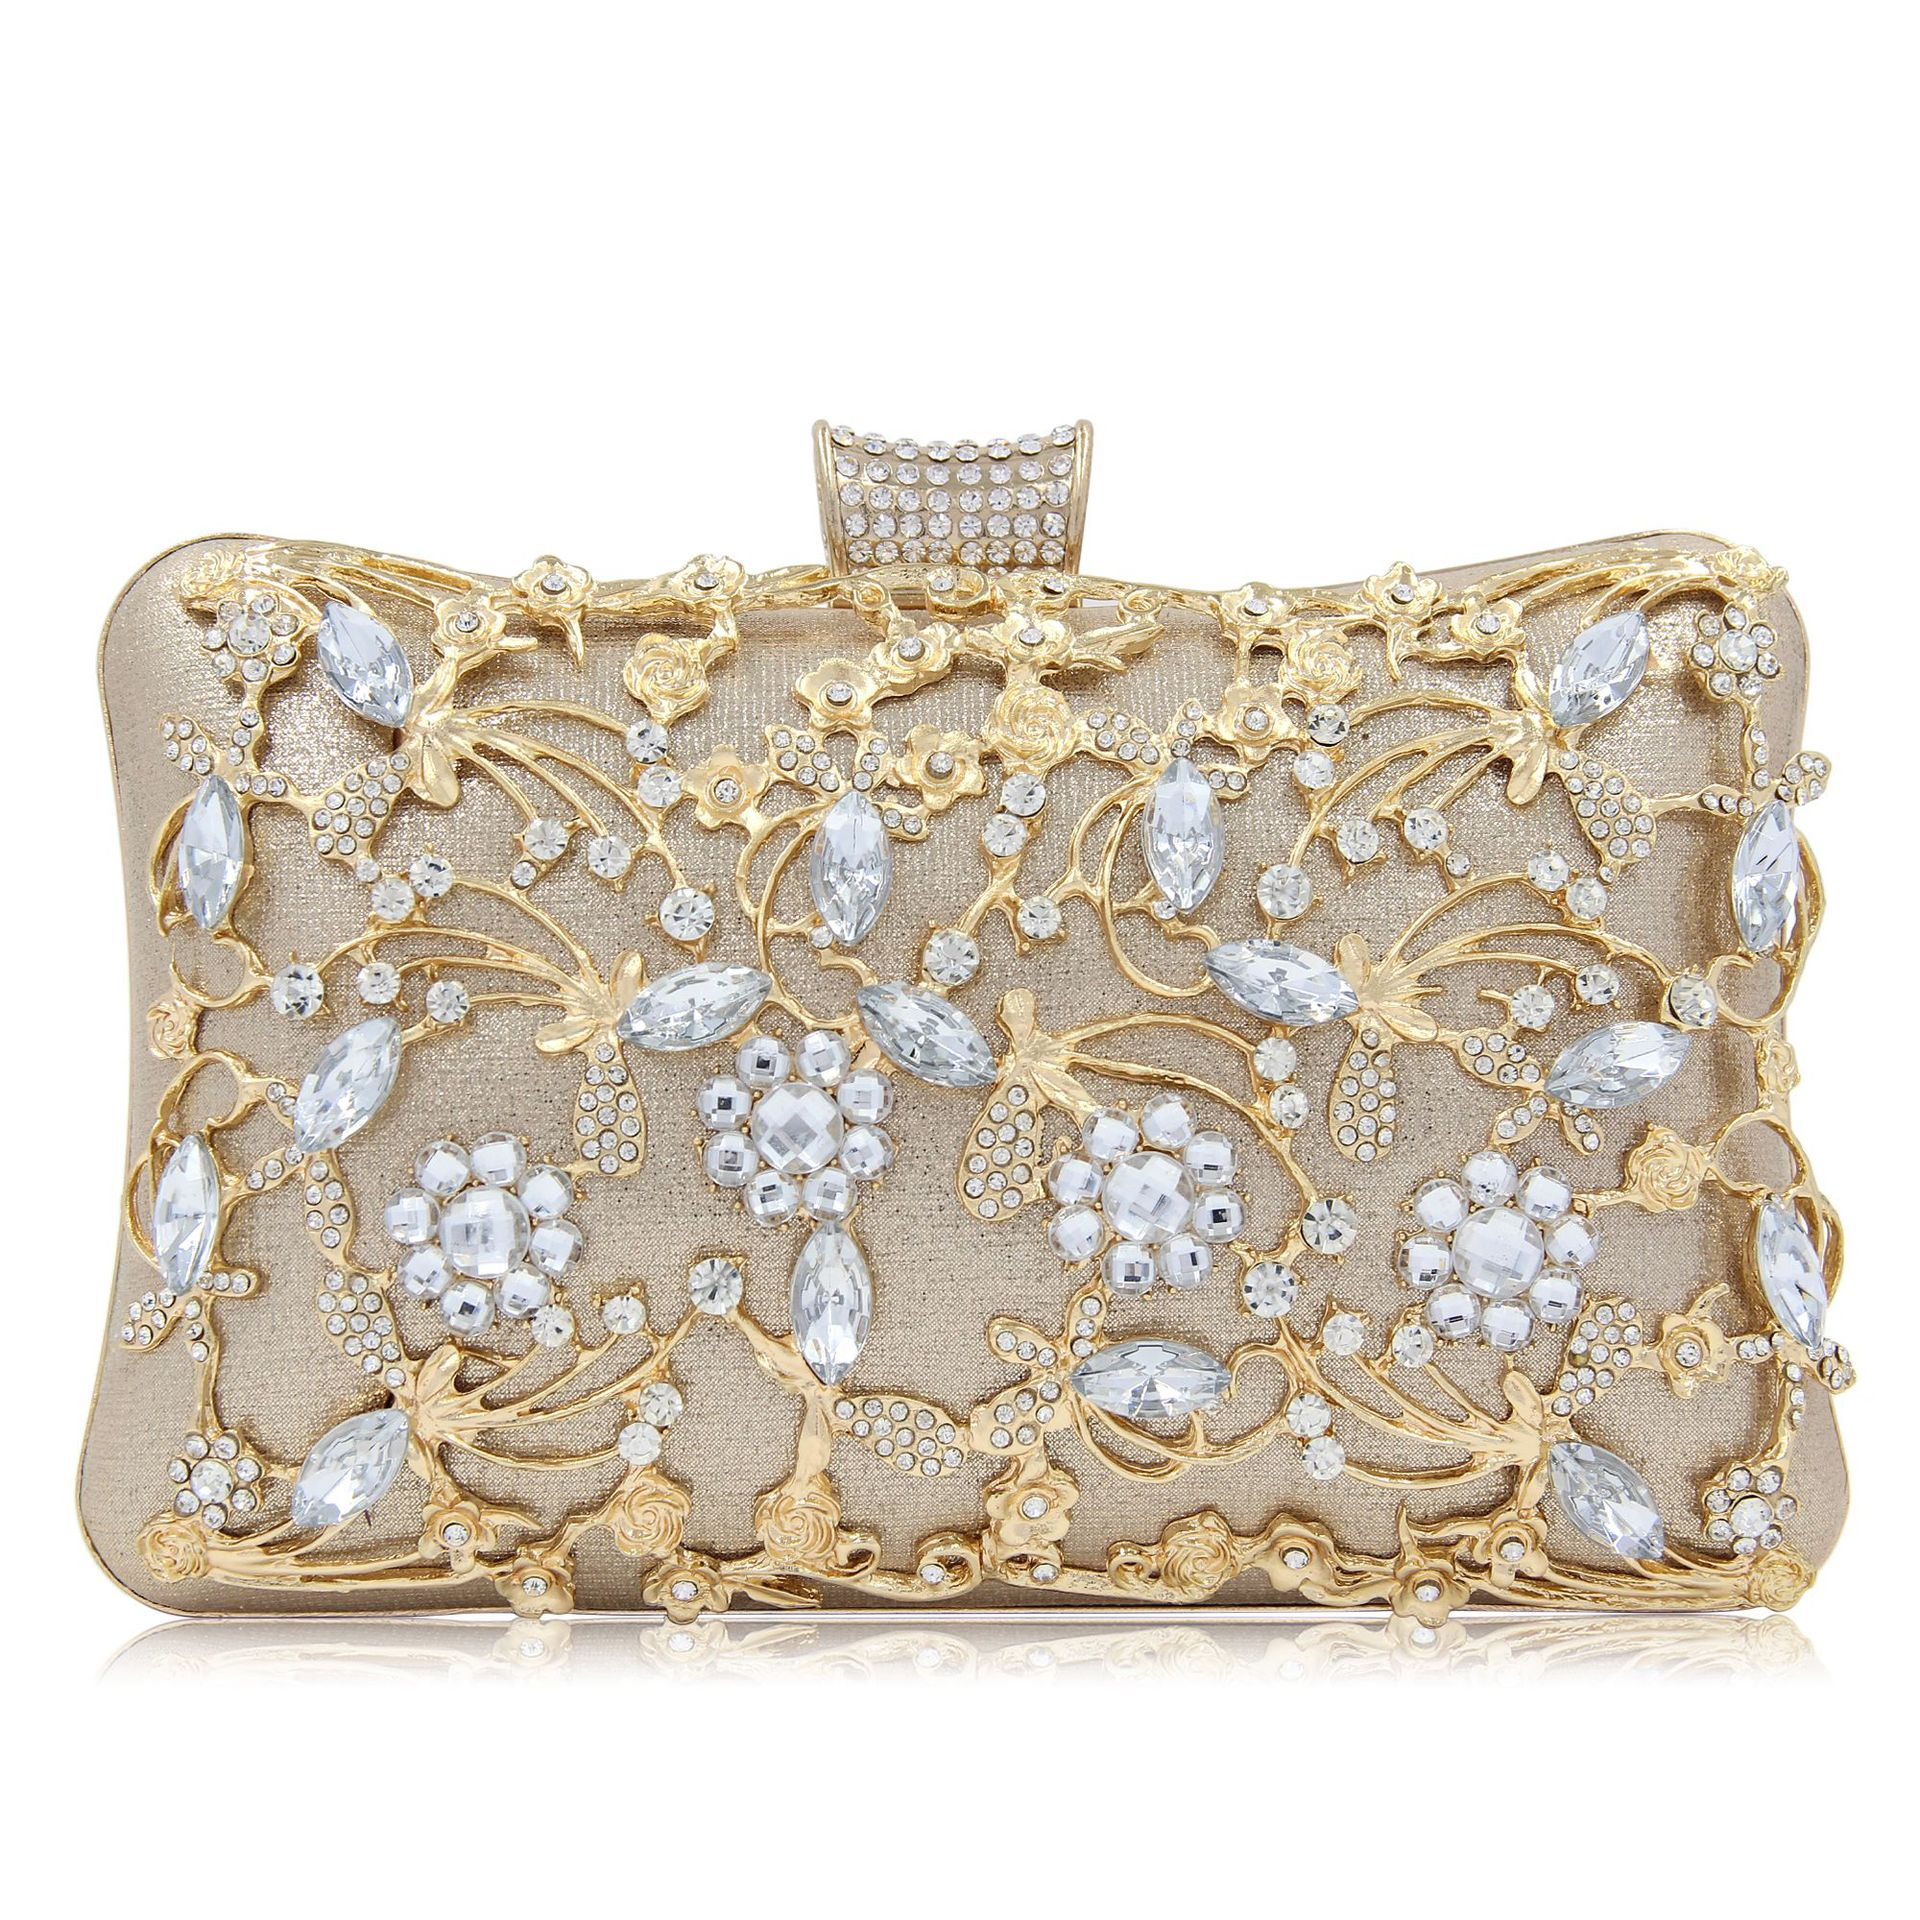 Hollow Diamond Women Evening Clutch Bags Cheongsam Bag Rhinestone Evening Party Bags Ladies Day Clutches Purses Shoulder Bags retro 2017 floral beaded handbag women shoulder bags day clutch bride rhinestone evening bags for wedding party clutches purses